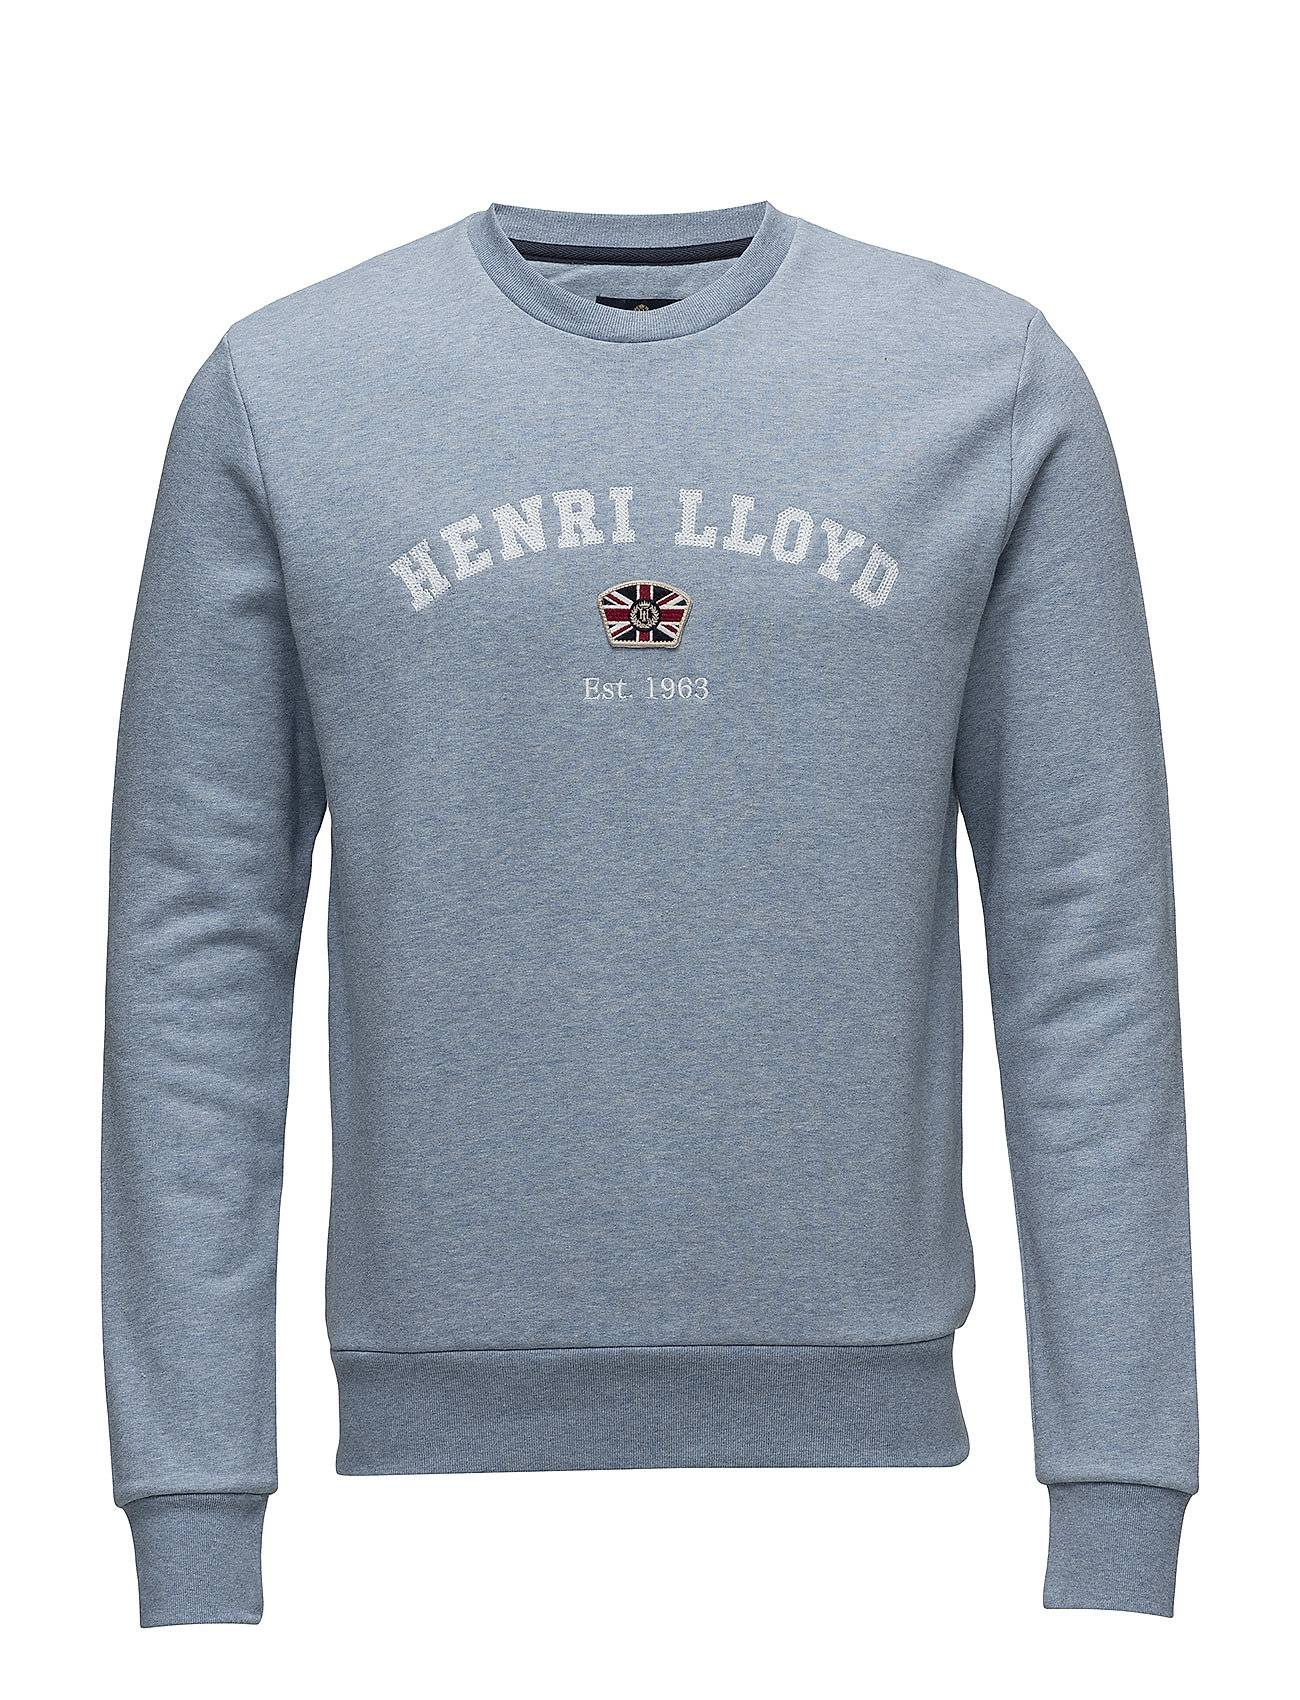 Henri Lloyd Kyme Branded Sweat